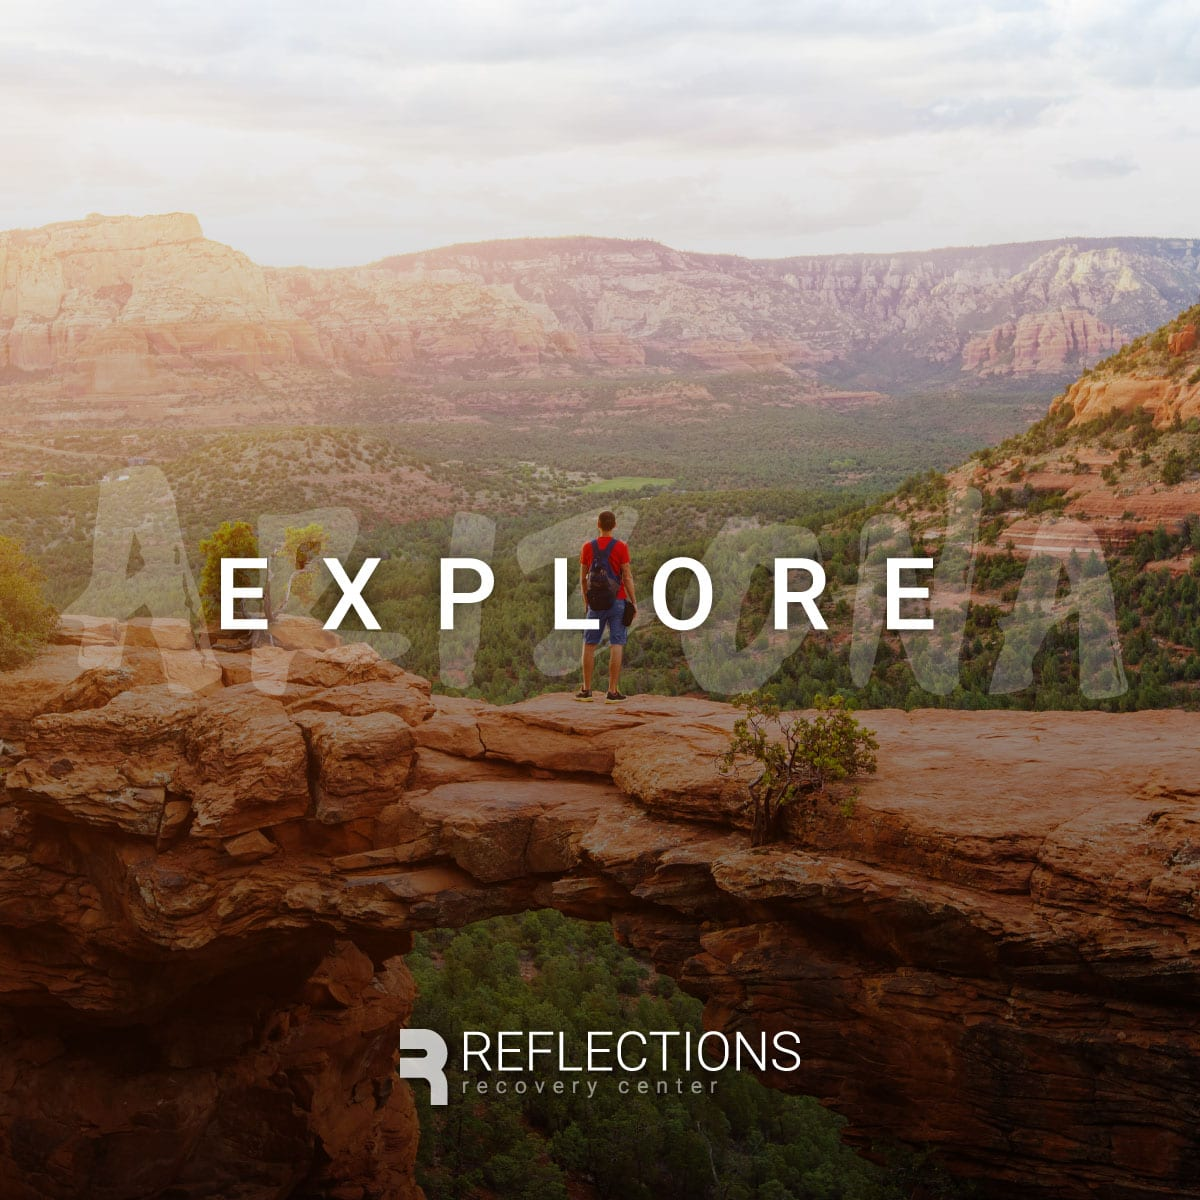 Enjoying Addiction Treatment and Therapy in Arizona Outdoors - Reflections Recovery